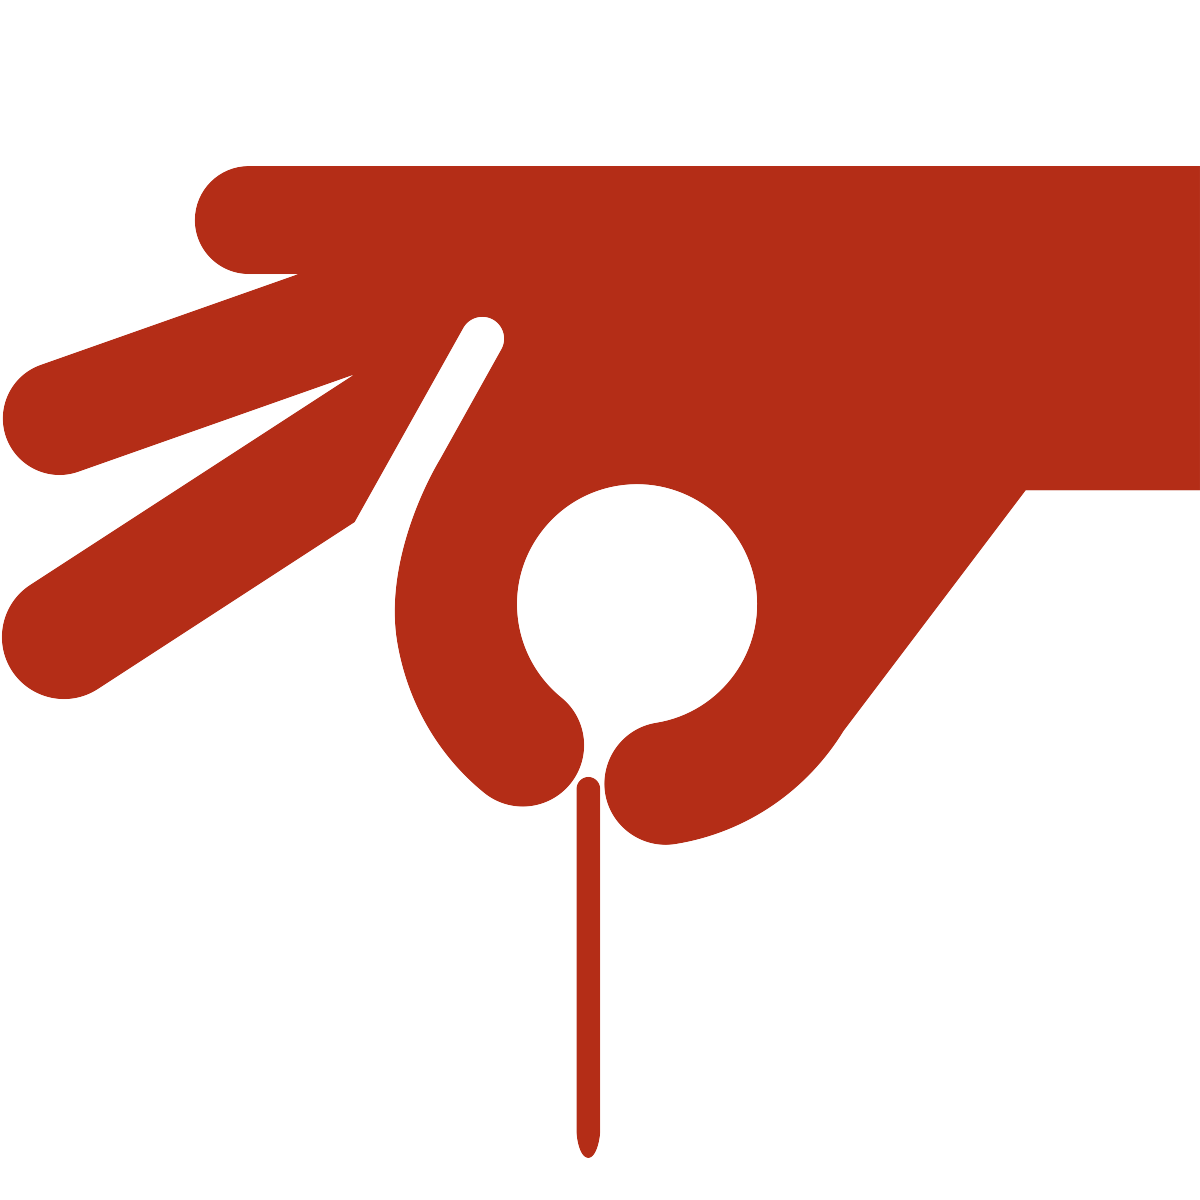 icon of hand holding an acupuncture needle